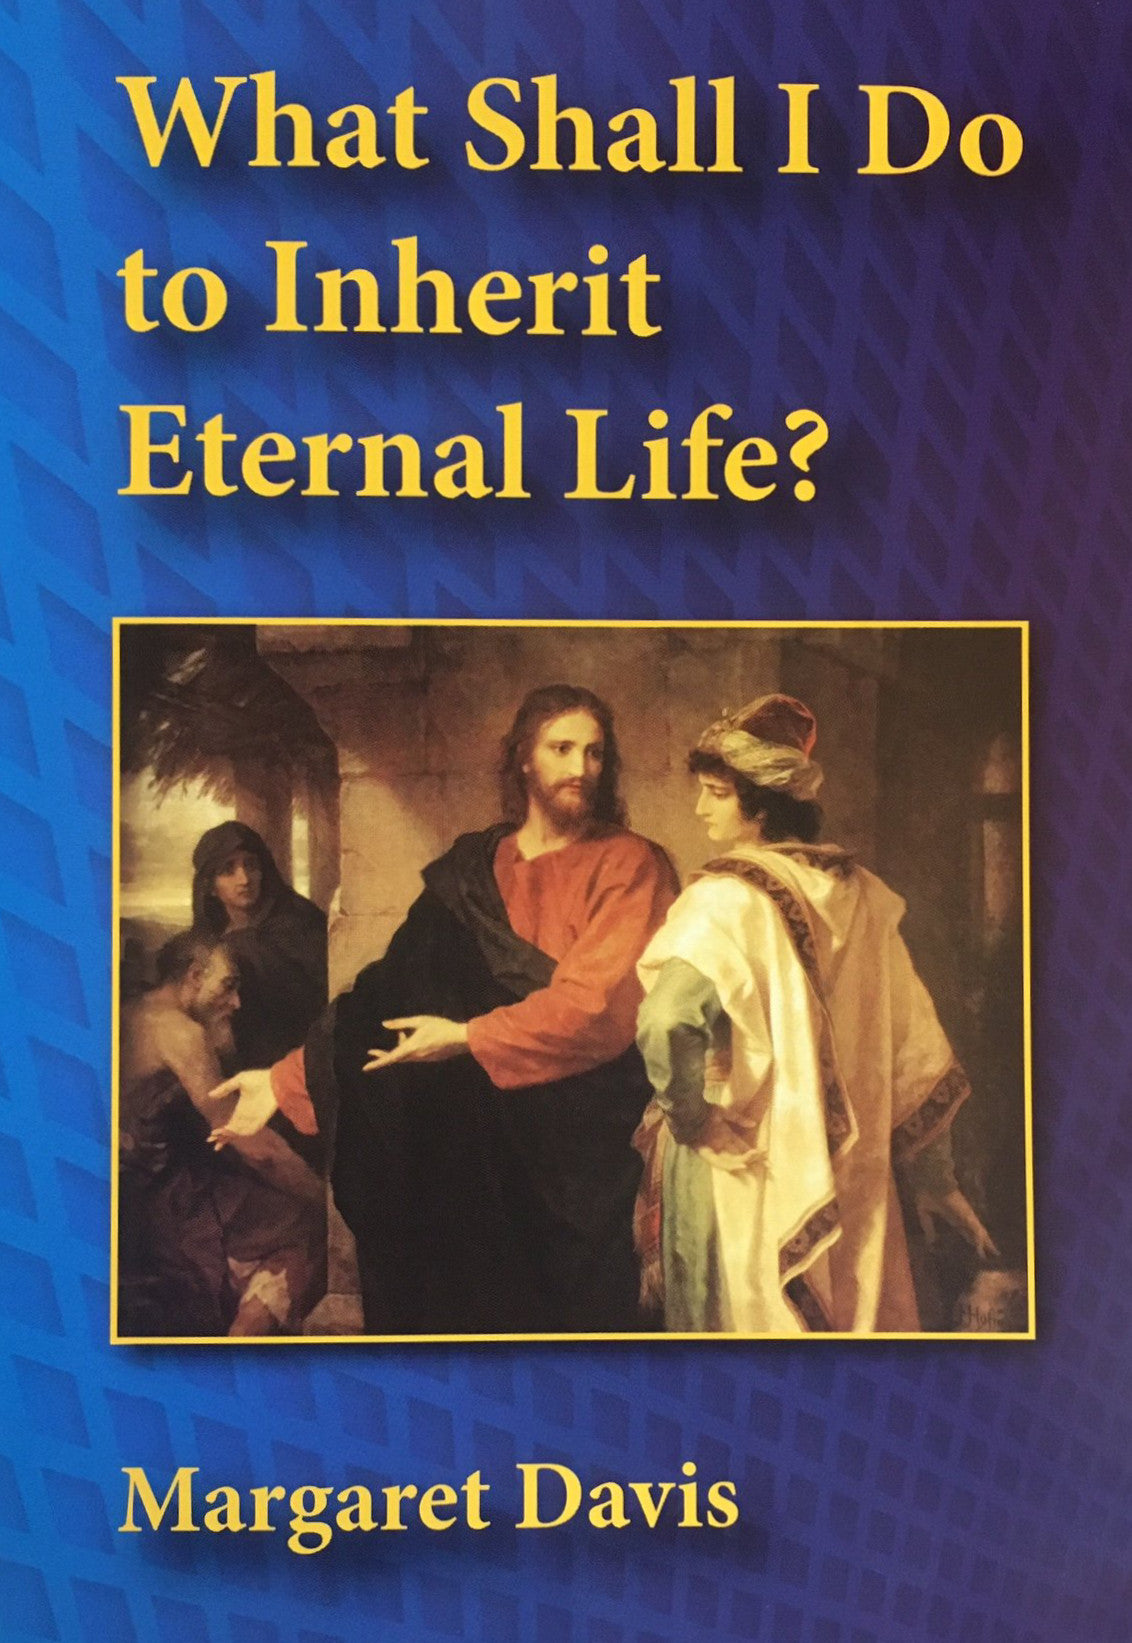 What Shall I Do to Inherit Eternal Life? - DVD - By Margaret Davis